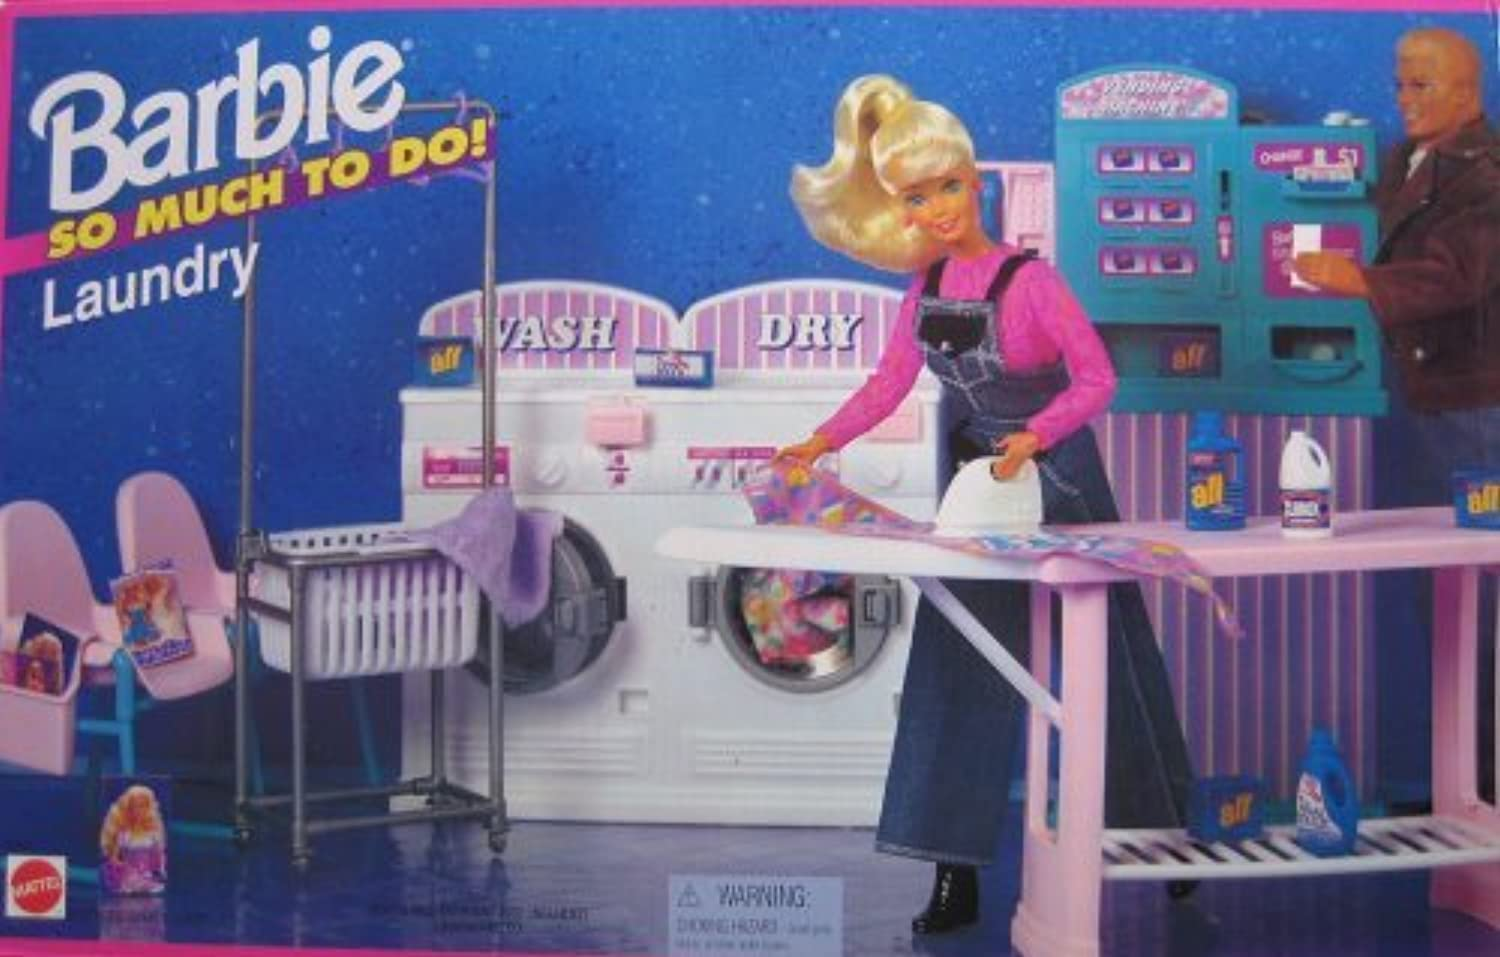 Barbie So Much To Do Laundry Playset (1995 Arcotoys, Mattel) by Arcotoys, Mattel